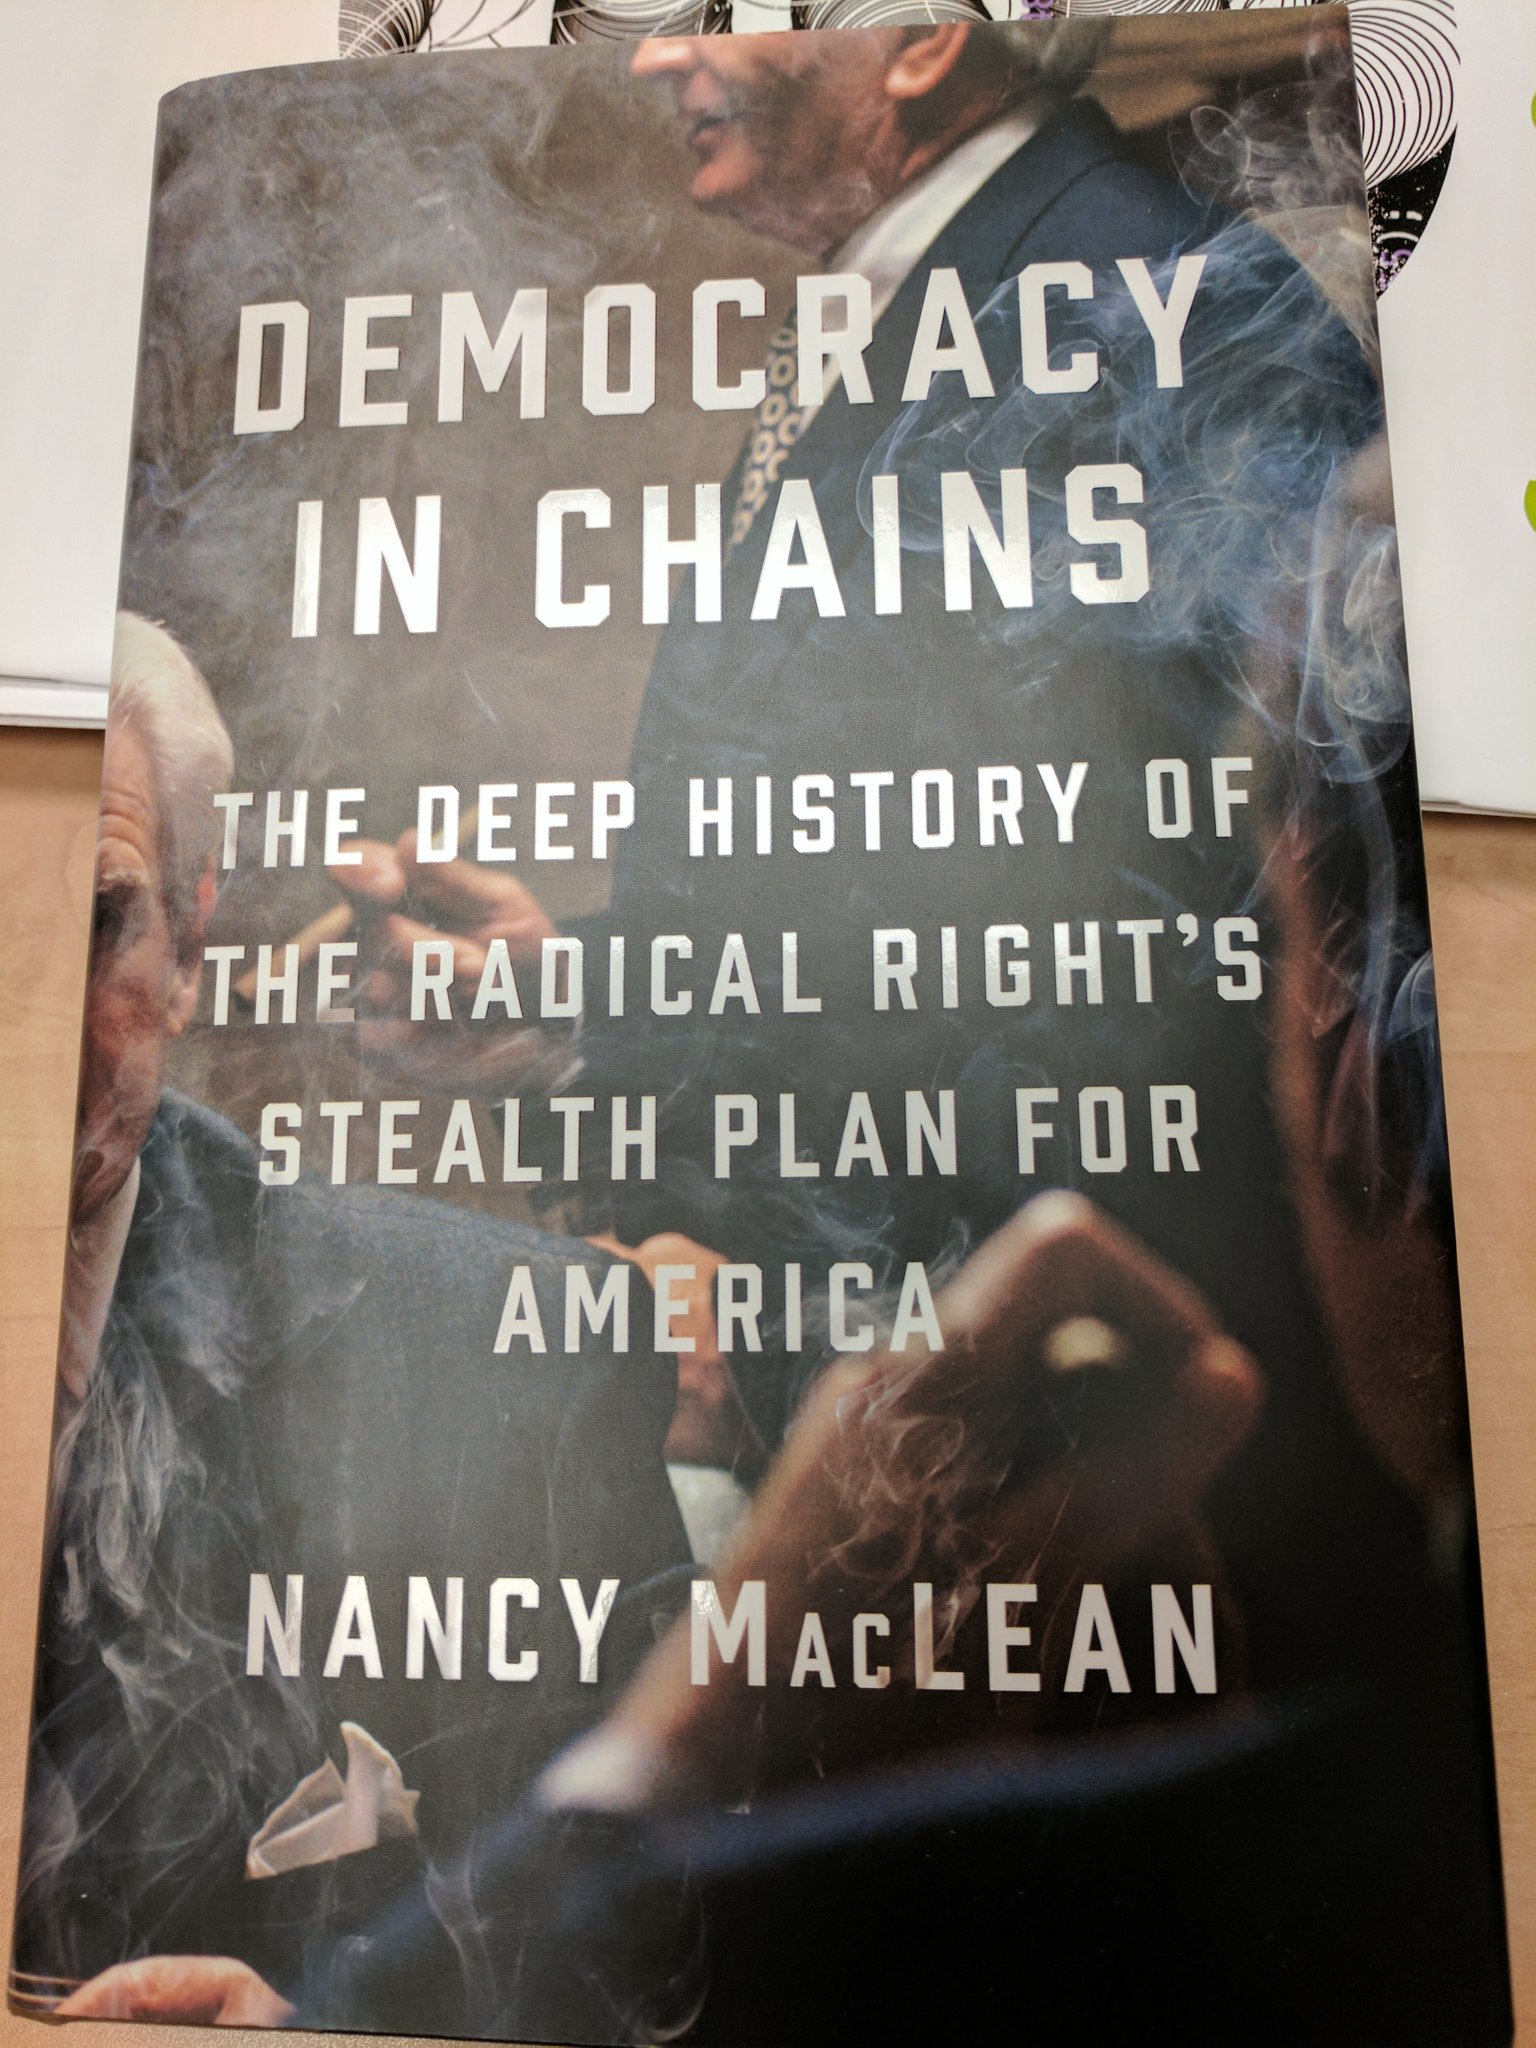 Reading this thoroughly-researched, passionately-argued, and scary as shit book. Anyone who cares about our society should, too. Then fight. https://t.co/ZhTXxvwfQB